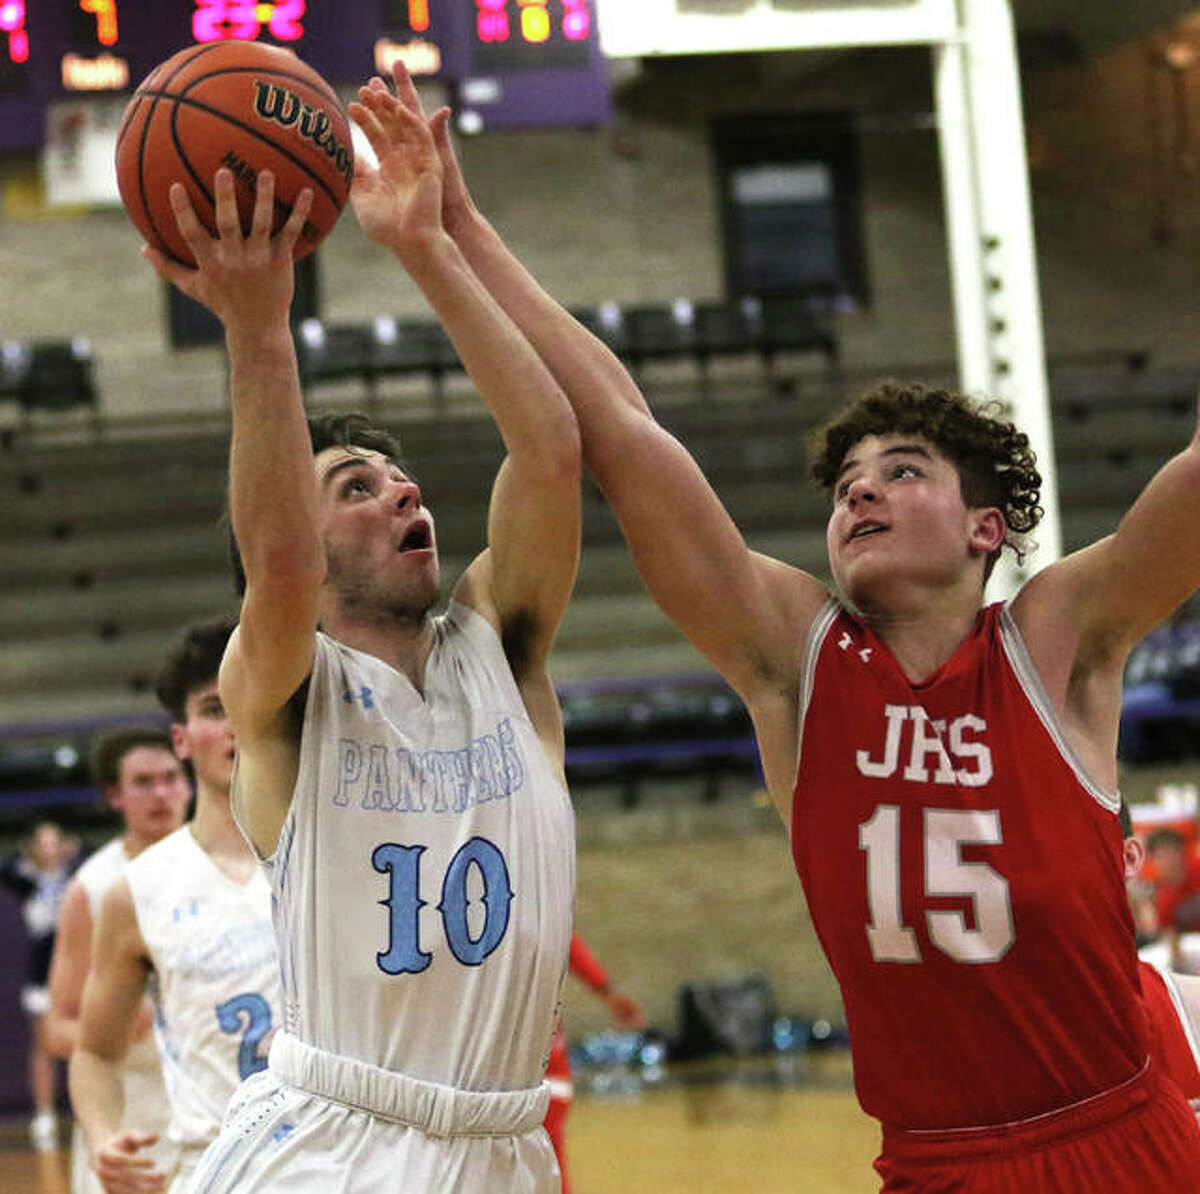 Jersey's Garrett Carey (10) scores while Jacksonville's Elijah Owens contests the shot Wednesday night in a semifinal at Taylorville Class 3A Regional.